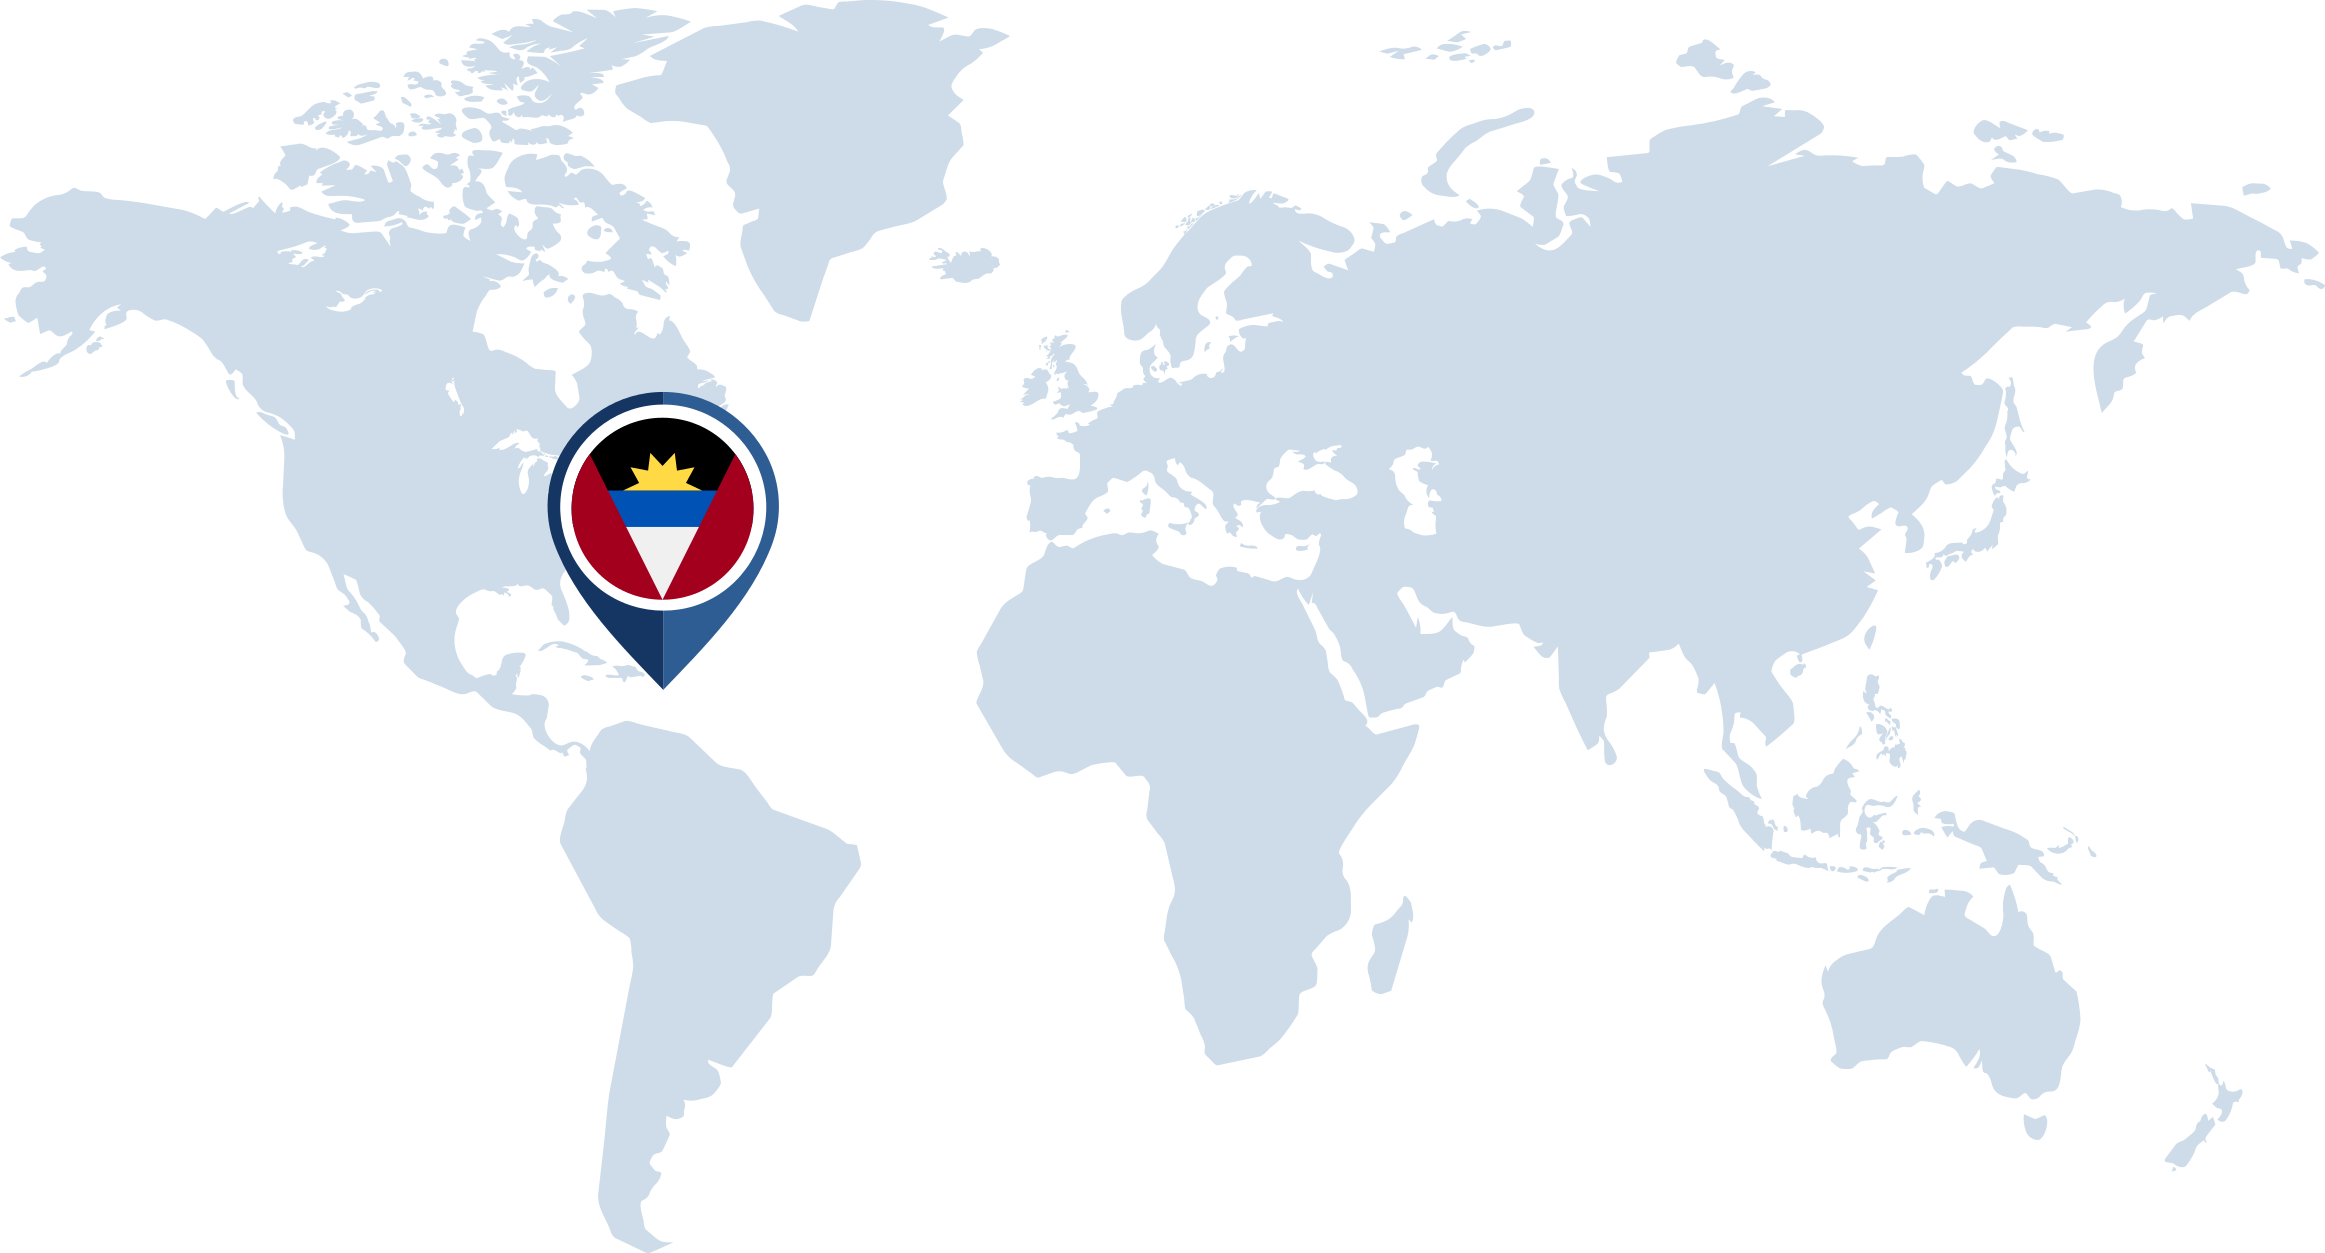 https://www.bluemina.com/wp-content/uploads/2020/02/Antigua-and-Barbuda-Map.png